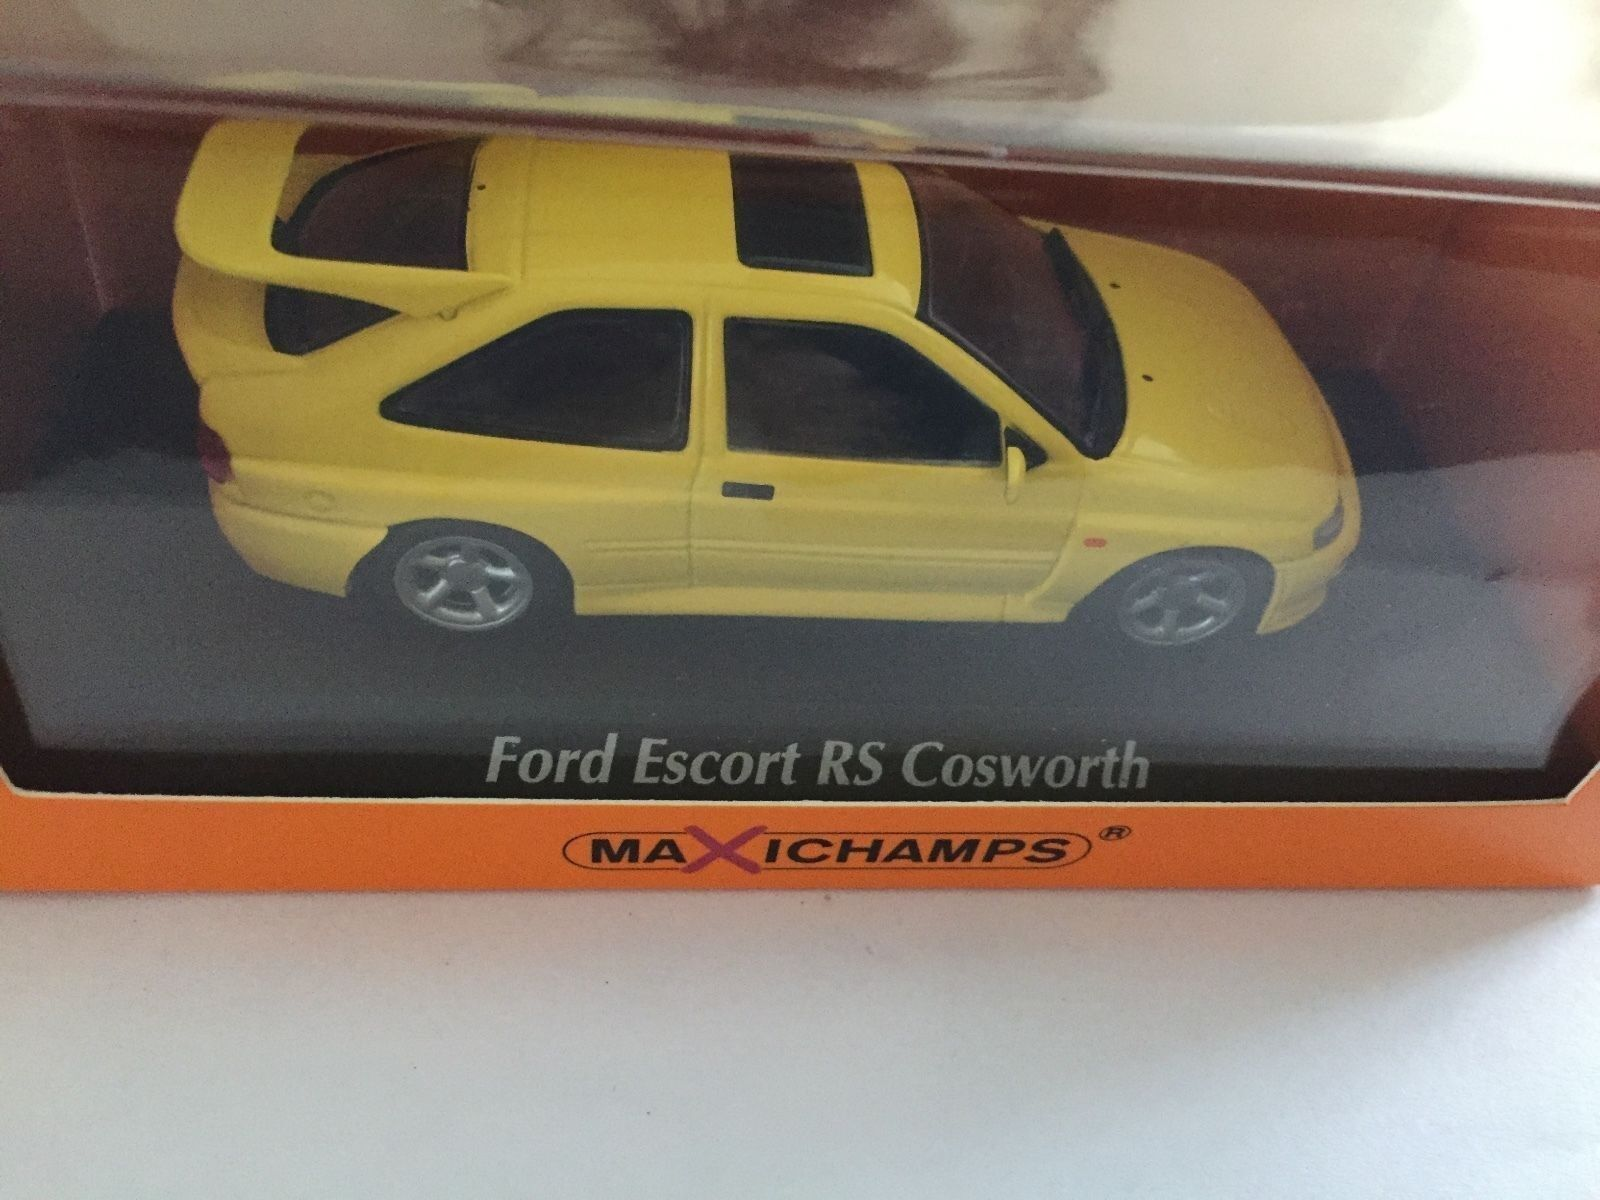 Ford Escort RS Cosworth 1992 Yellow Maxichamps 940 082101 1 43 diecast model